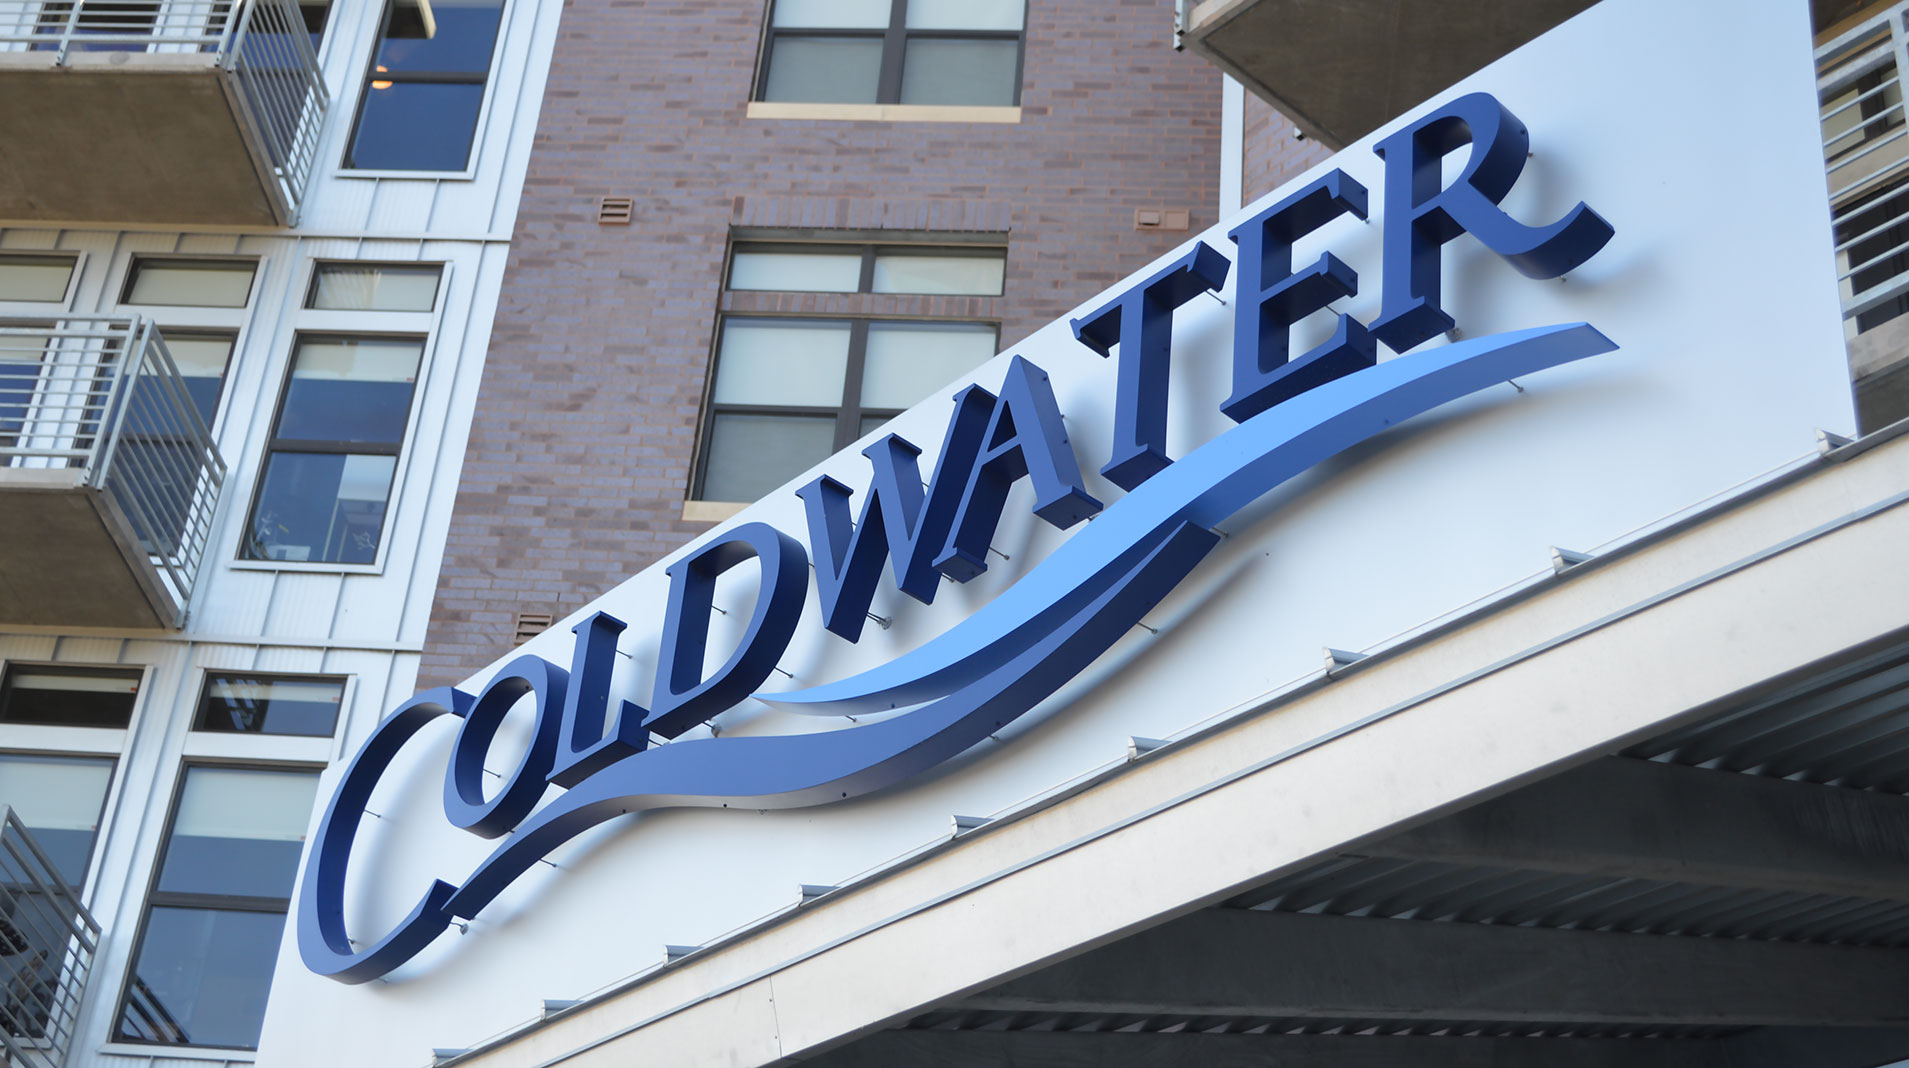 Coldwater Signage